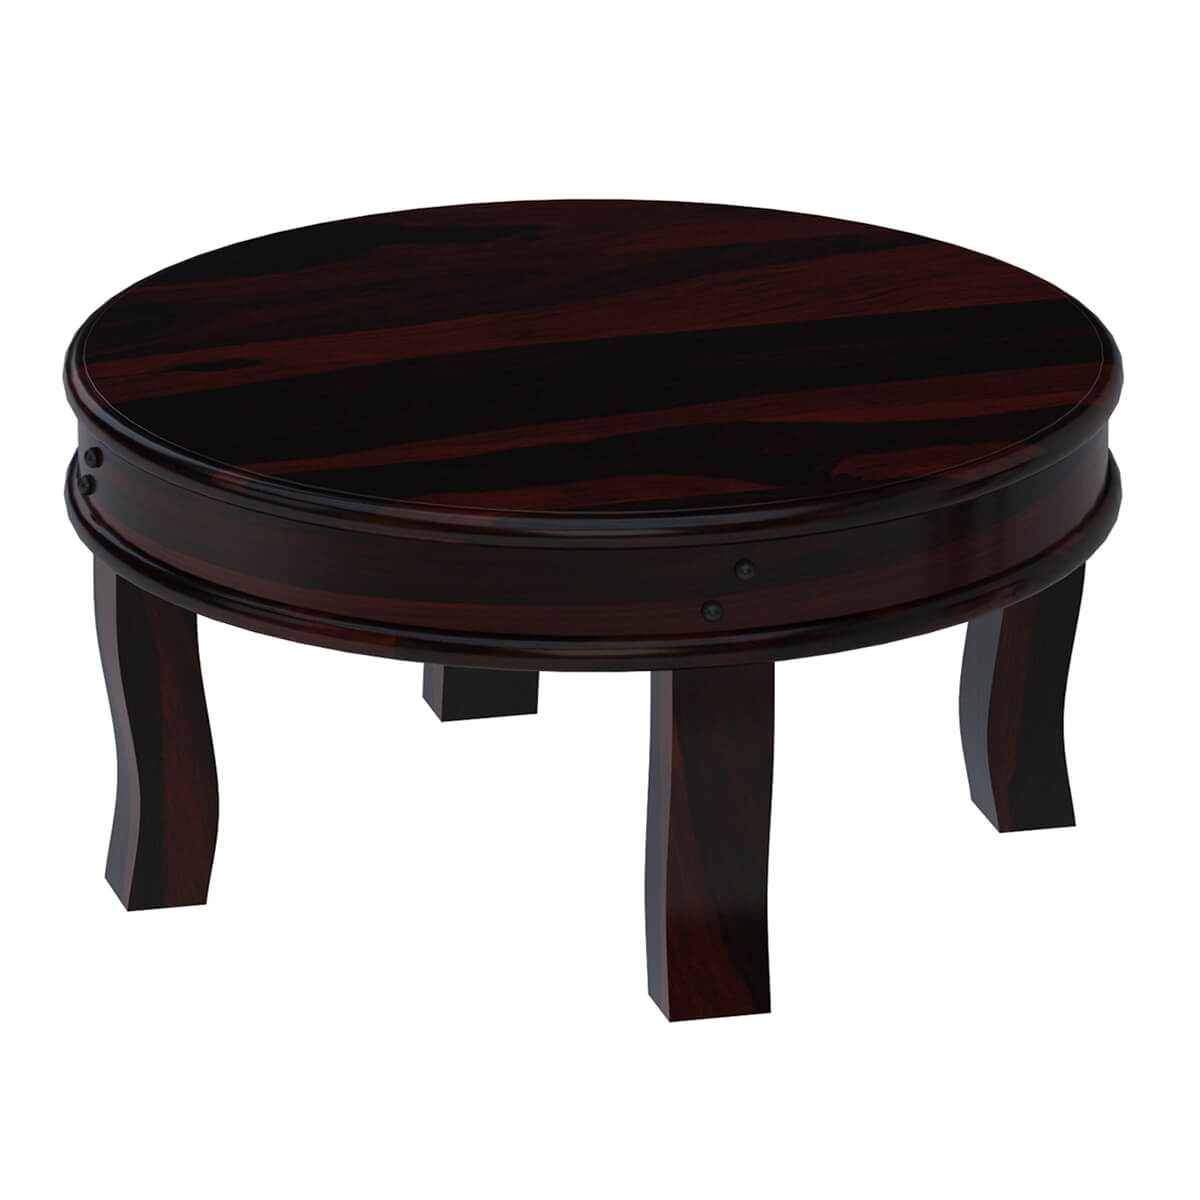 "Solid Wood Curved Coffee Table: Full Moon Solid Wood 36"" Round Coffee Table"